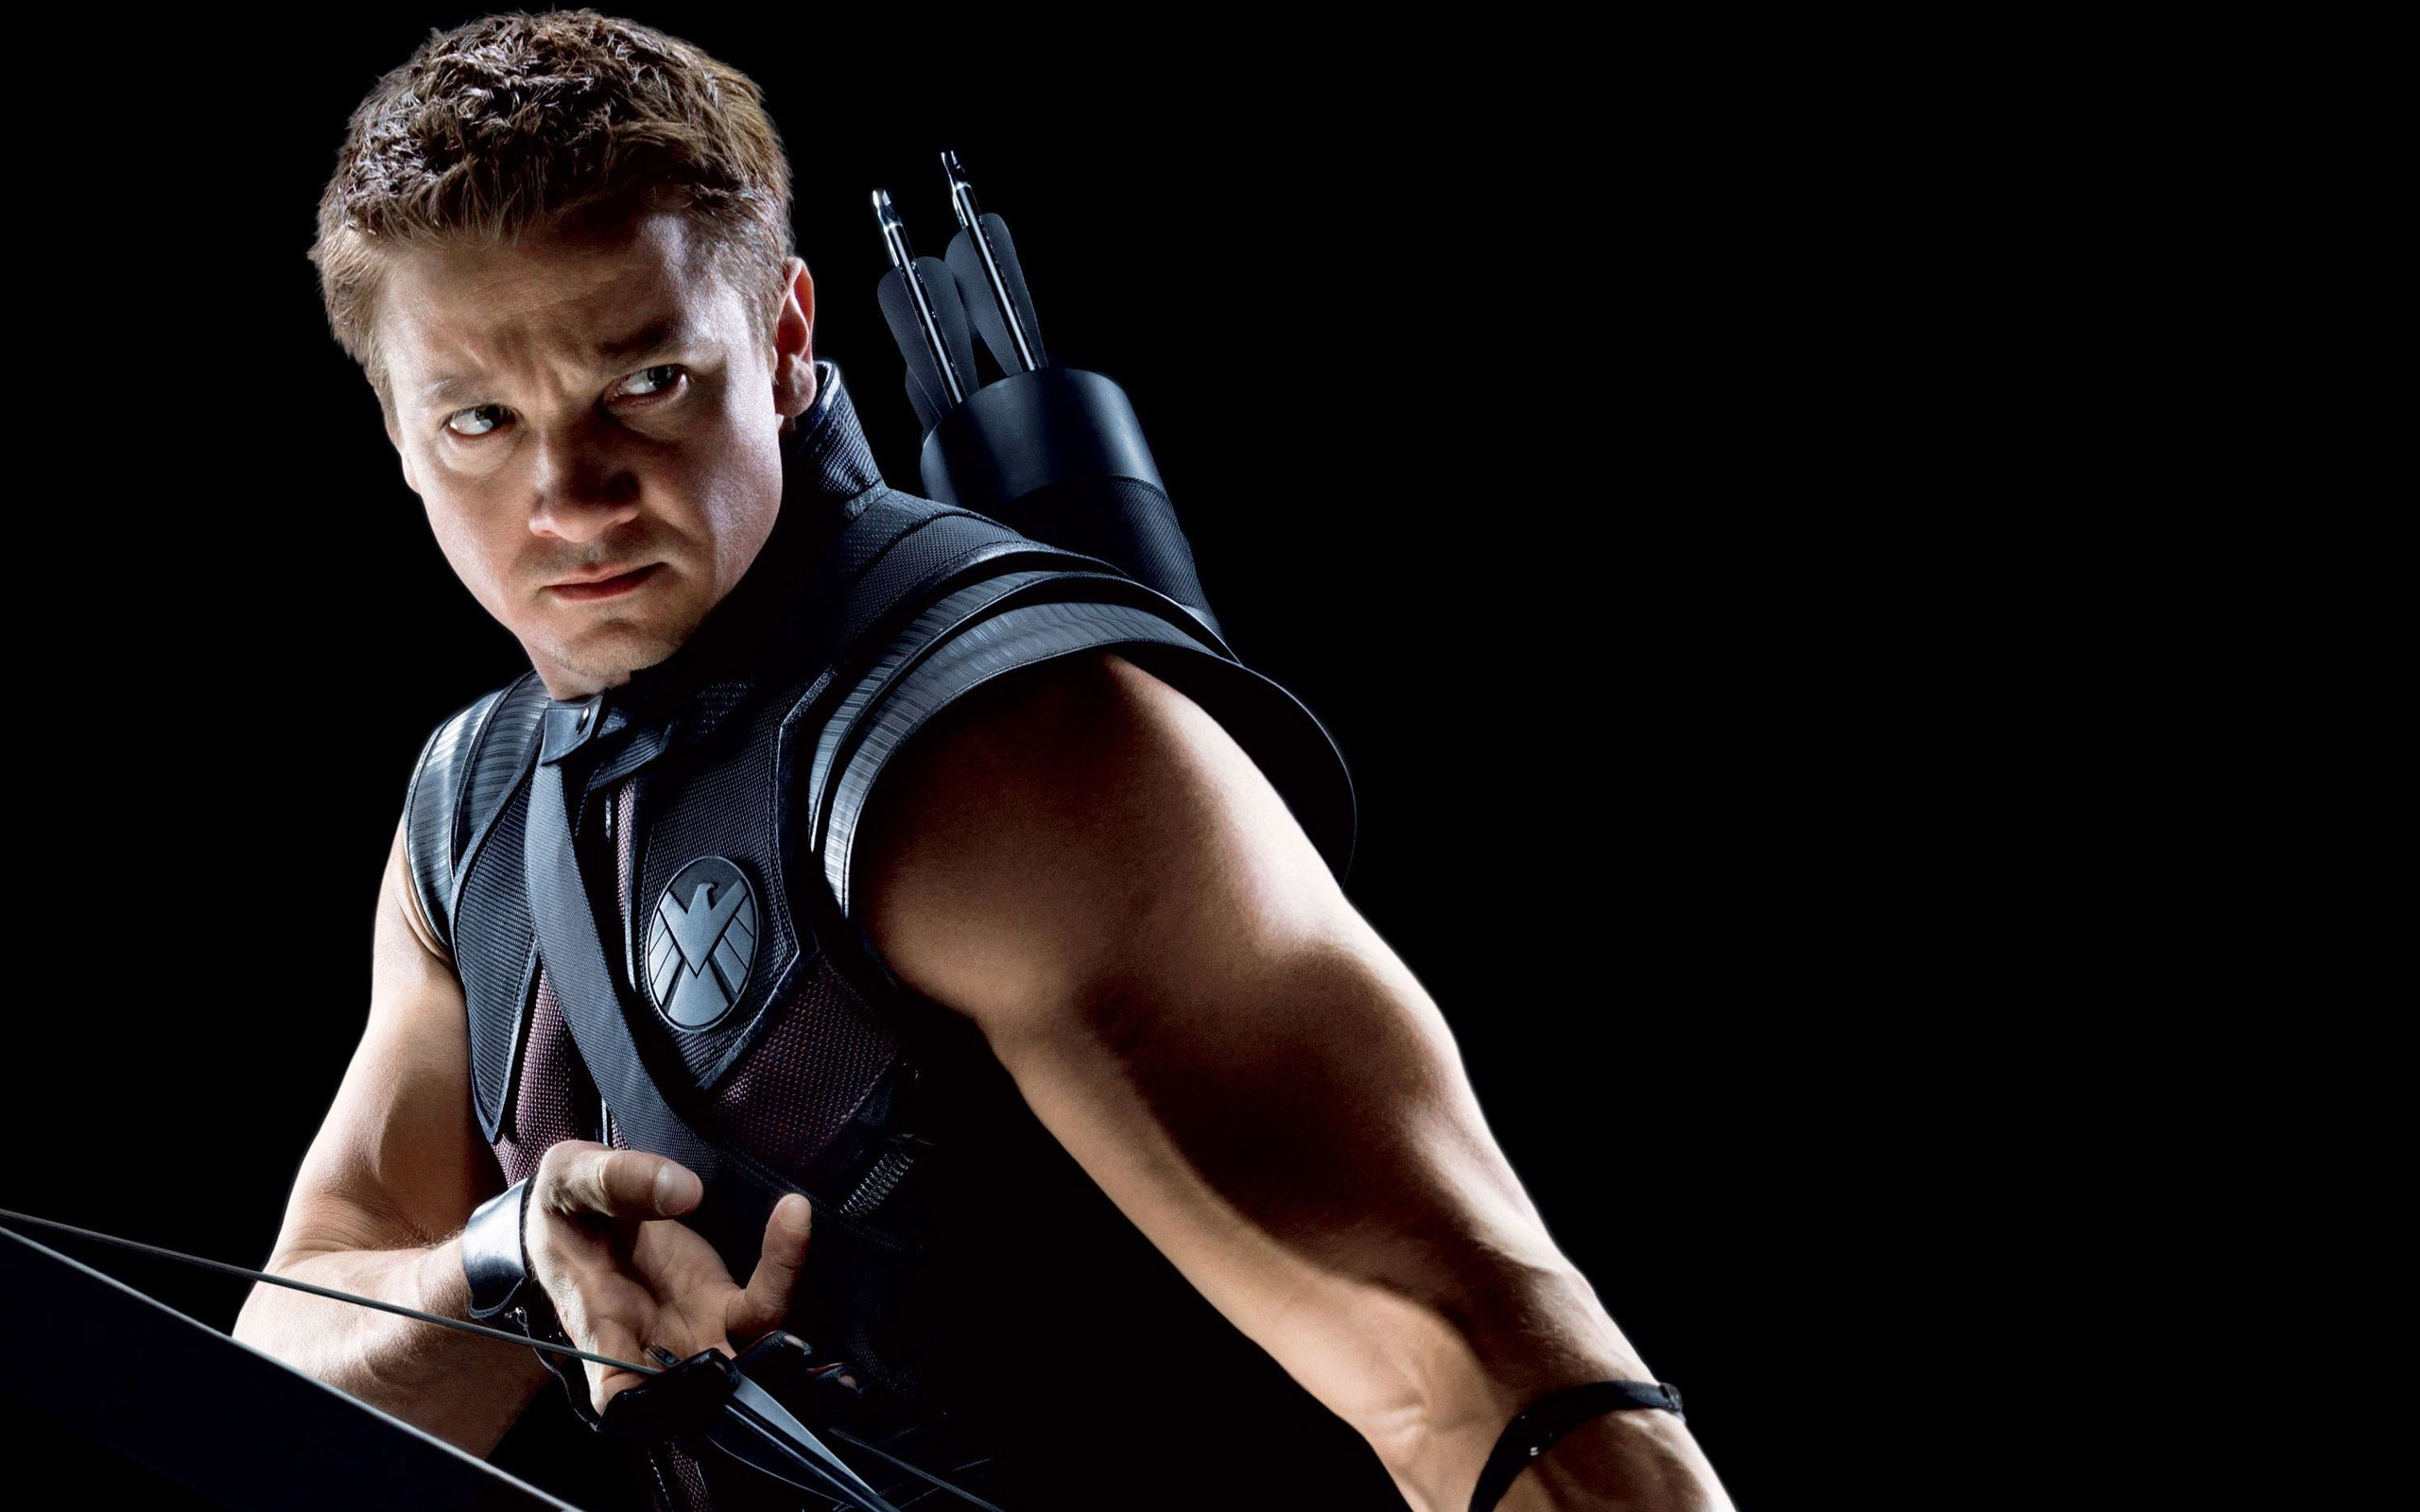 hawkeye wallpapers page - photo #43